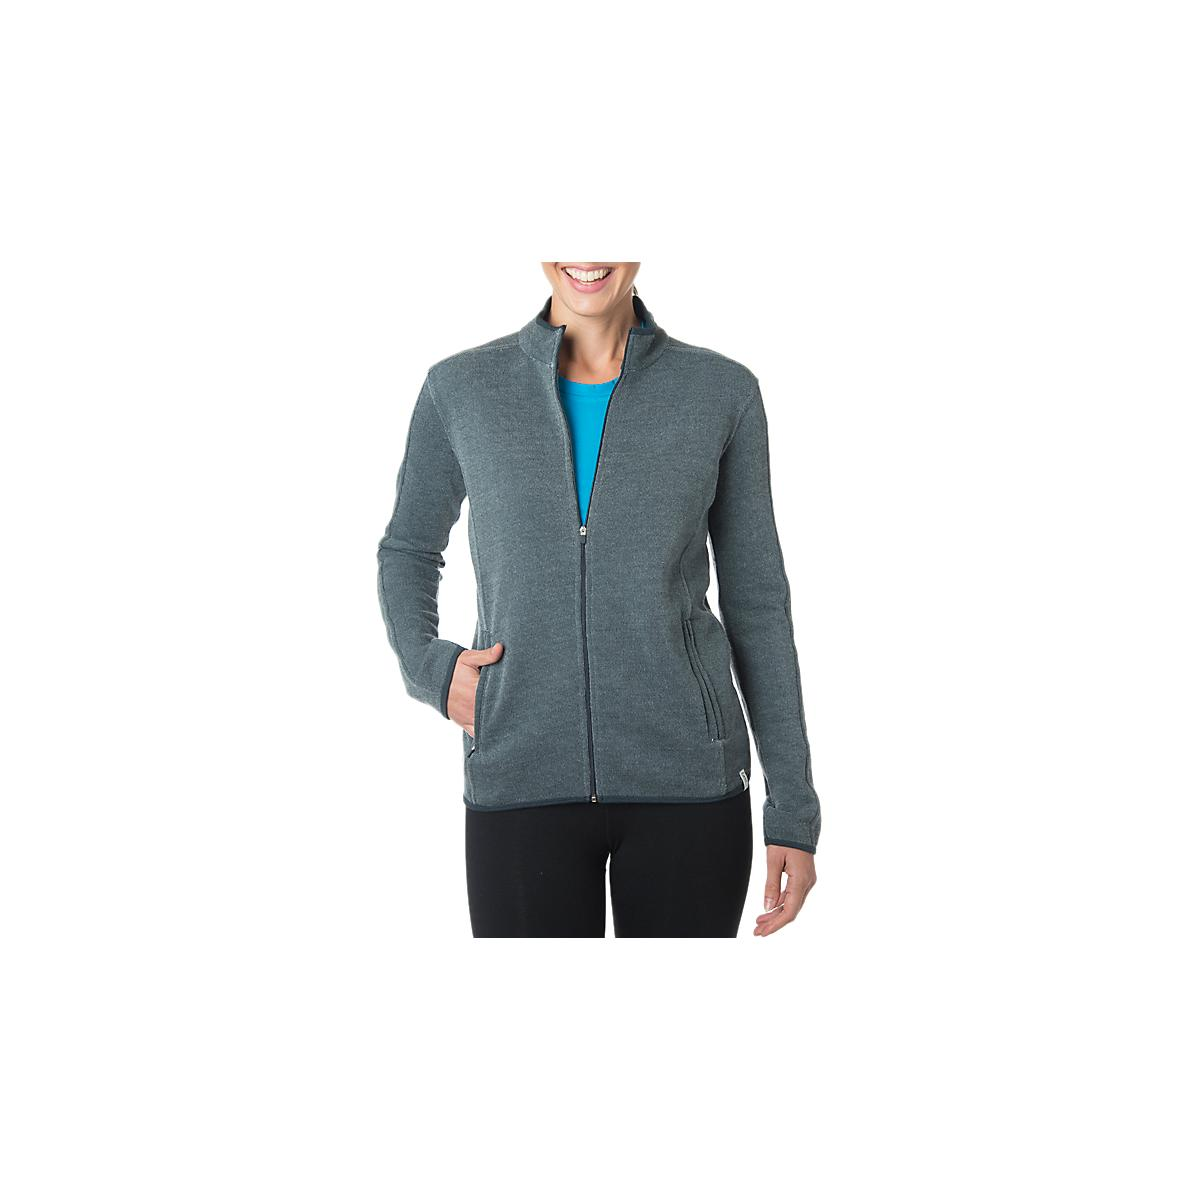 Women's Tasc Performance�Transcend Fleece Jacket